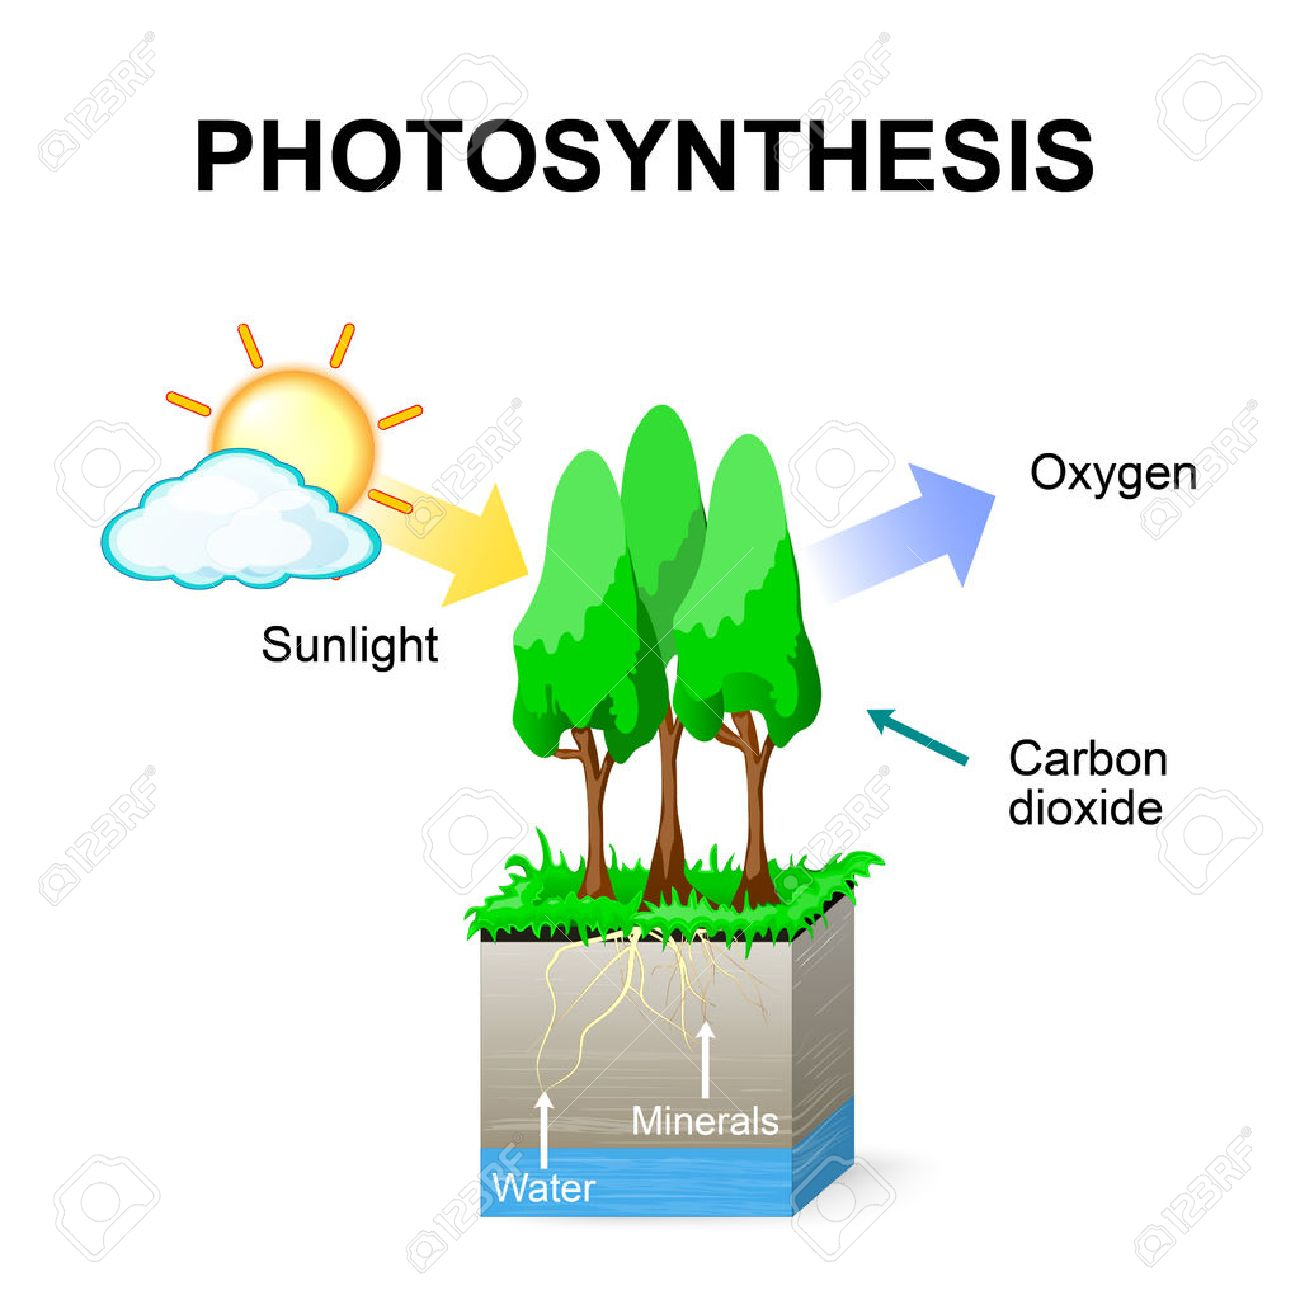 Photosynthesis vector schematic of photosynthesis in plants schematic of photosynthesis in plants stock vector 64914884 ccuart Gallery